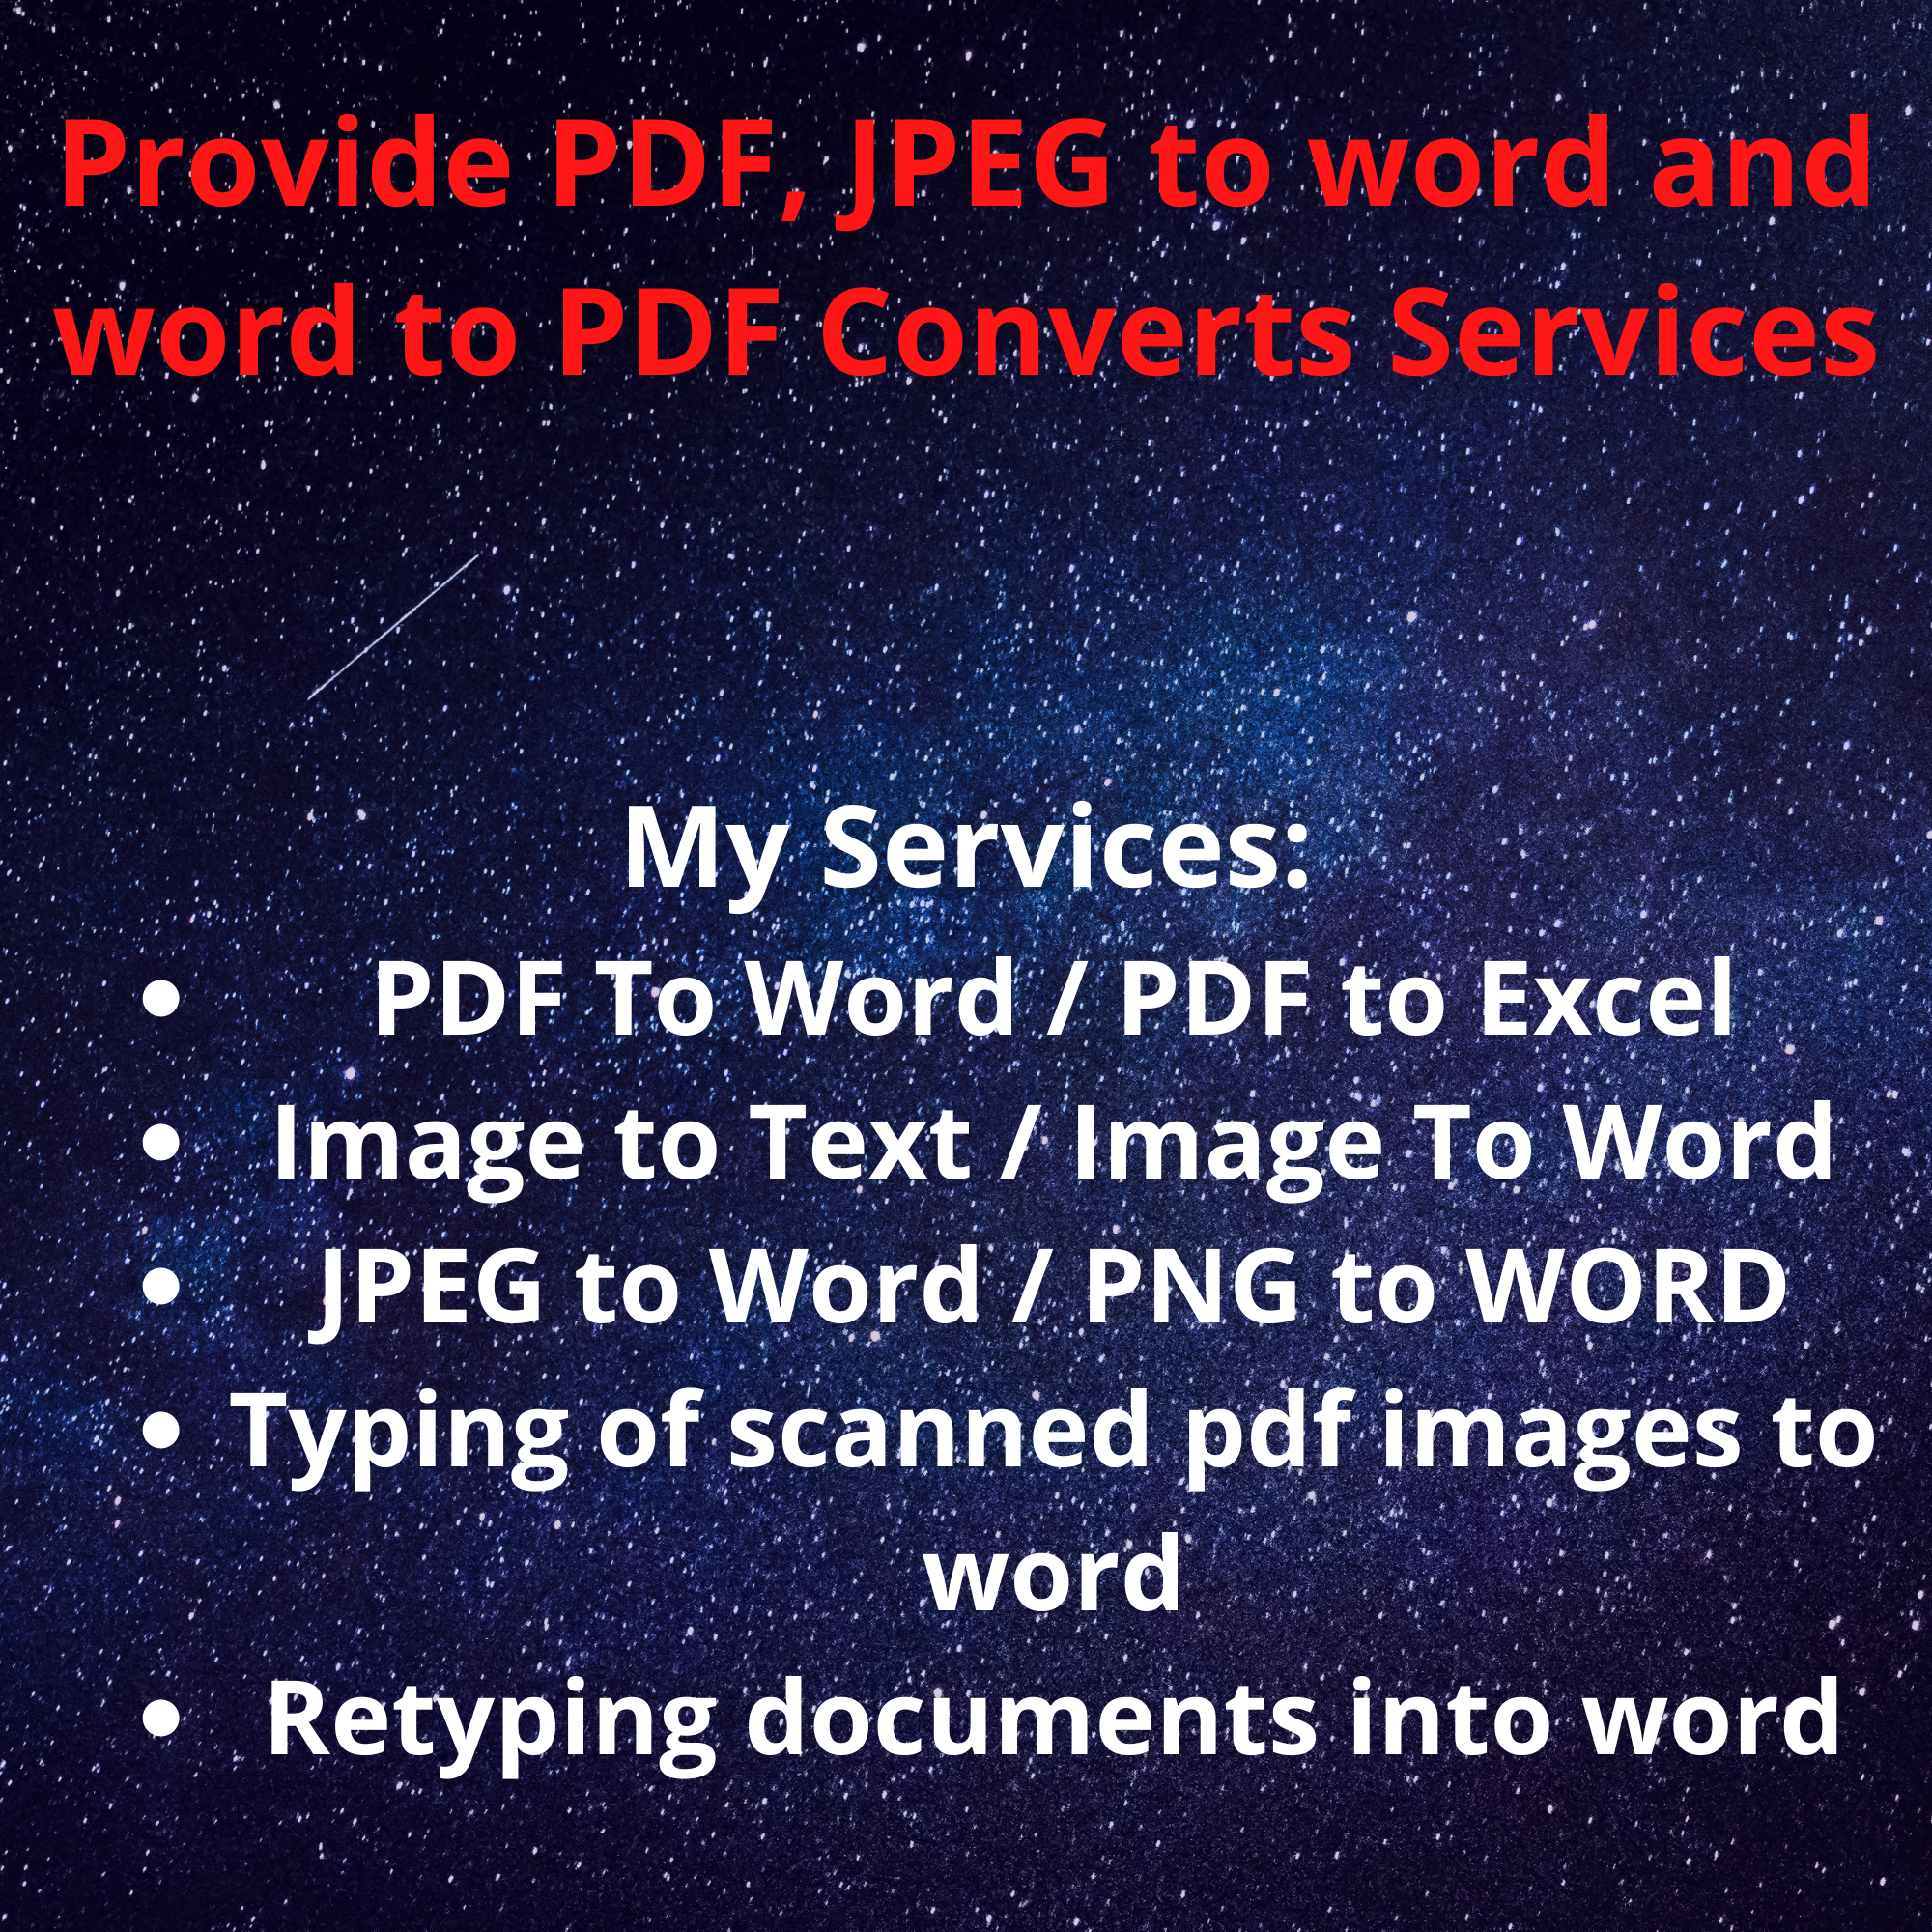 I will provide PDF,  JPEG to word and word to PDF Converts Services